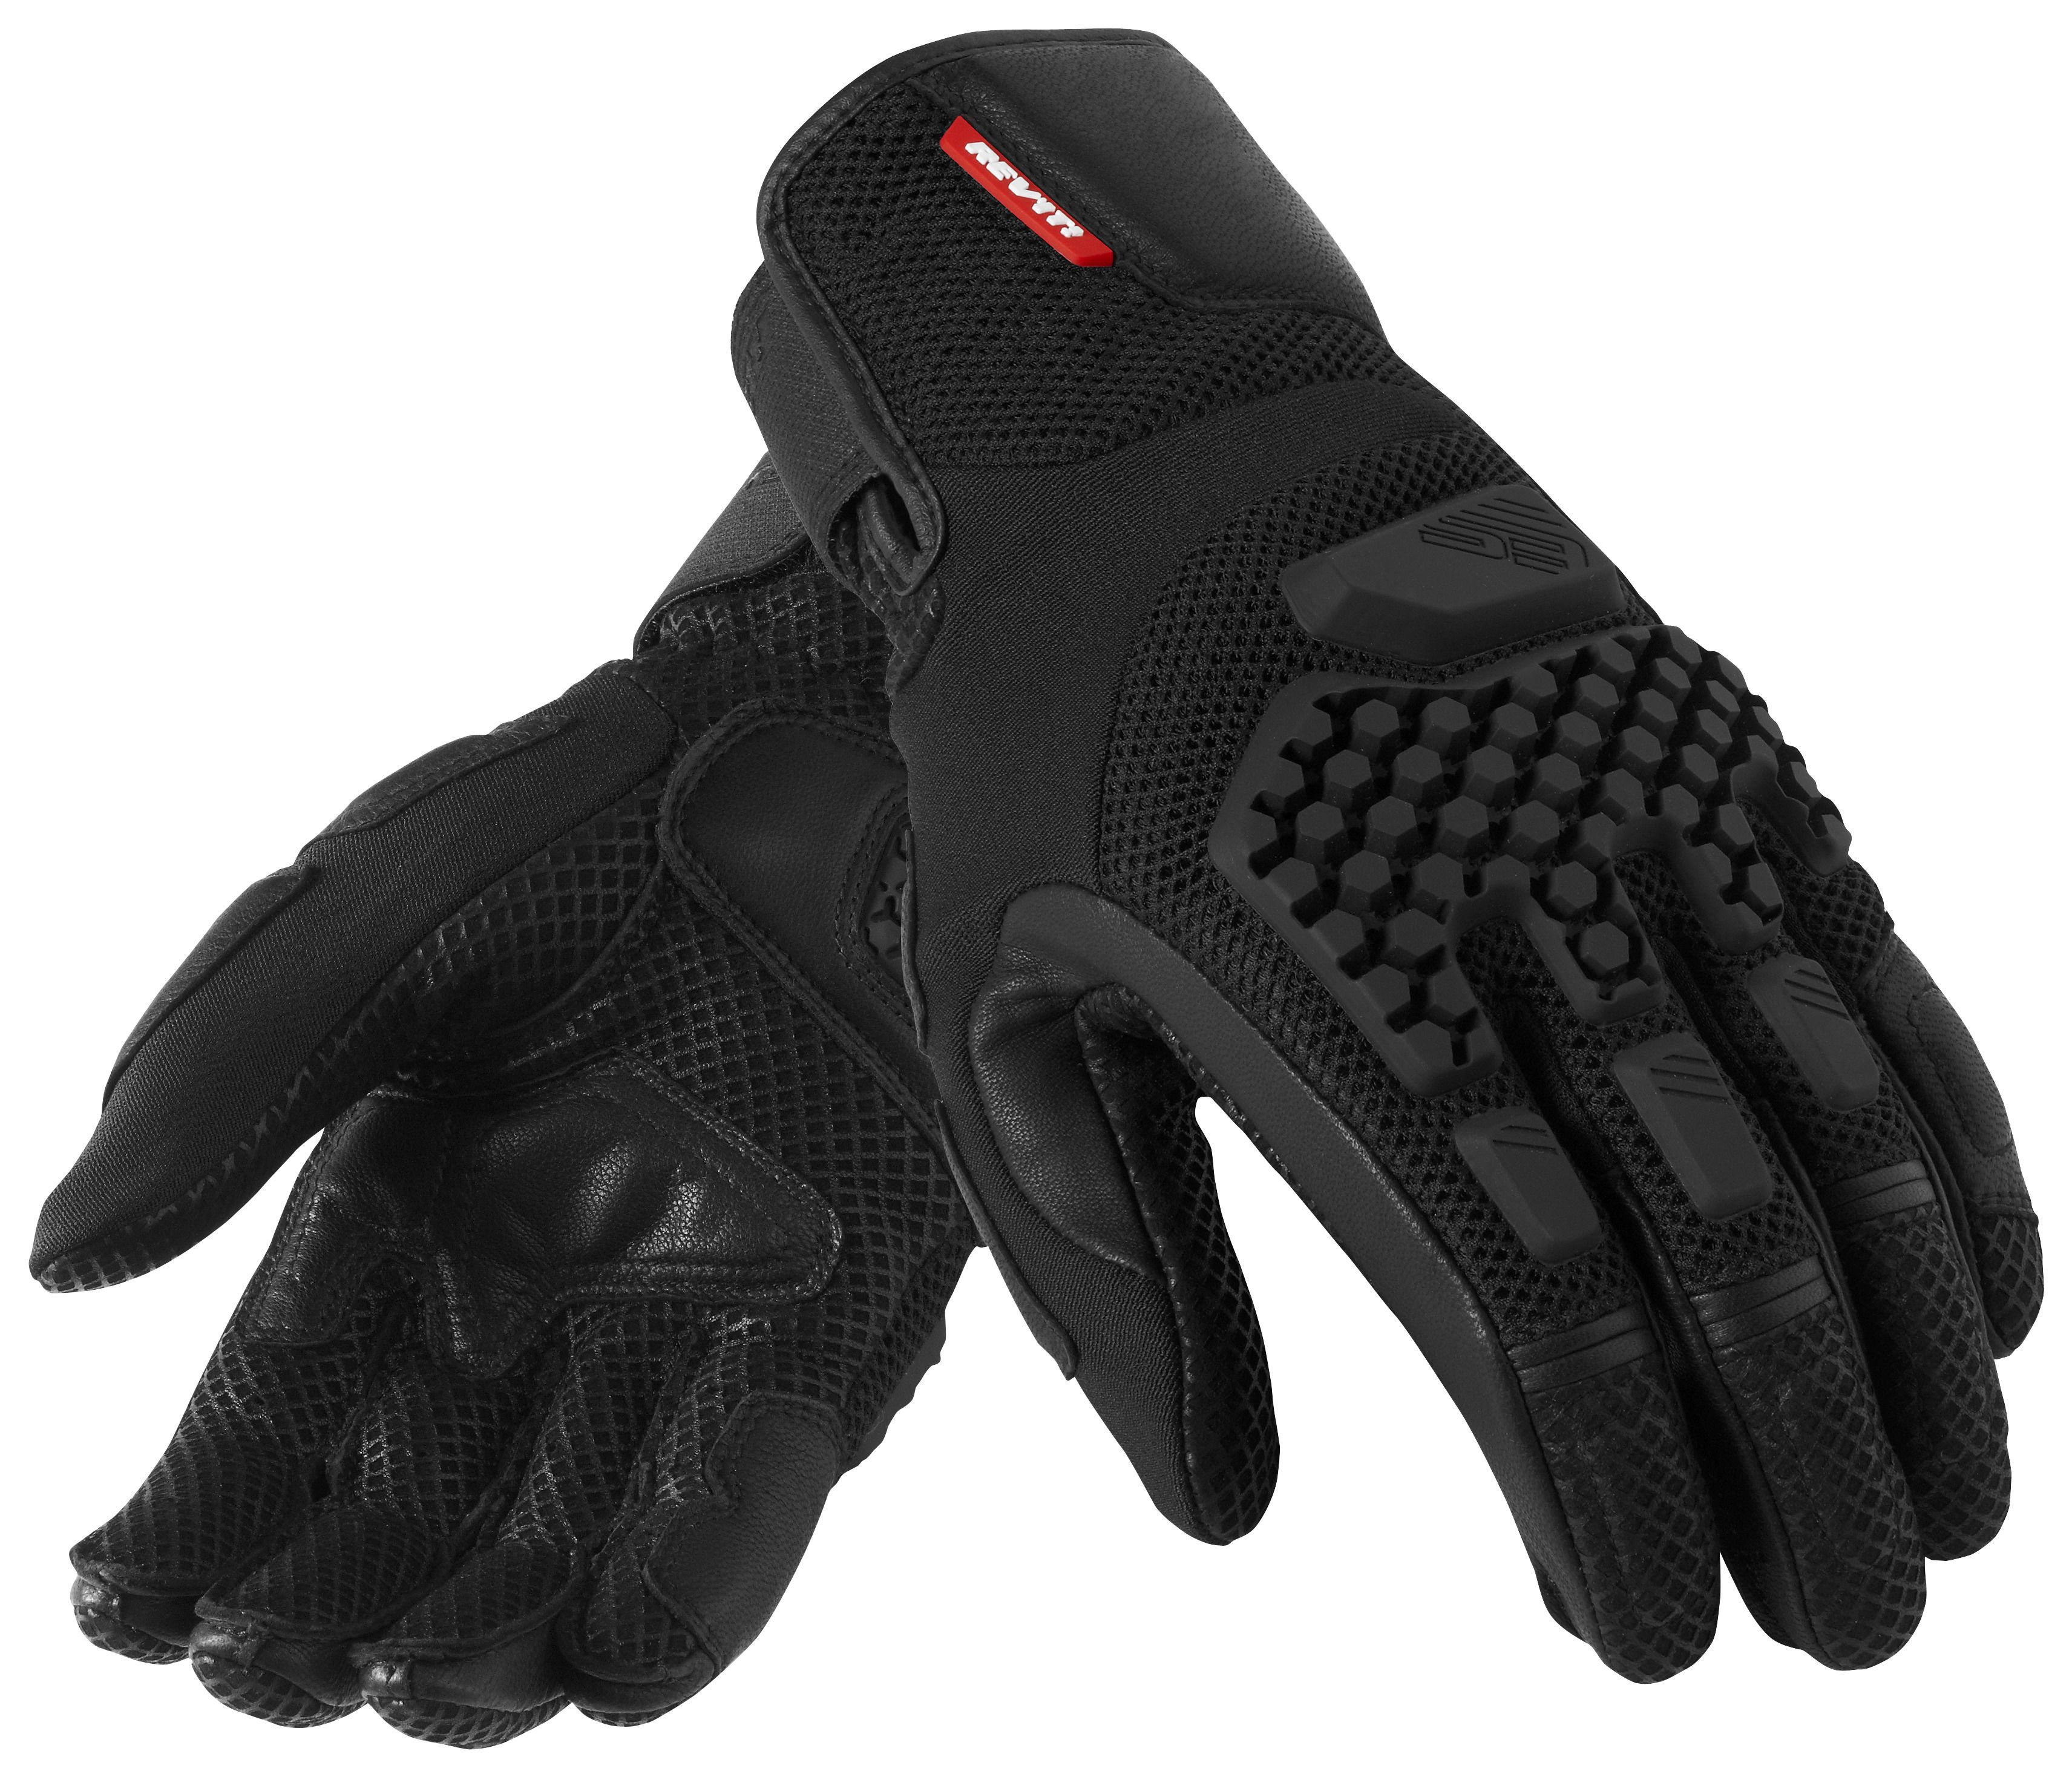 Motorcycle gloves bangalore - Sand Pro Gloves Revzilla